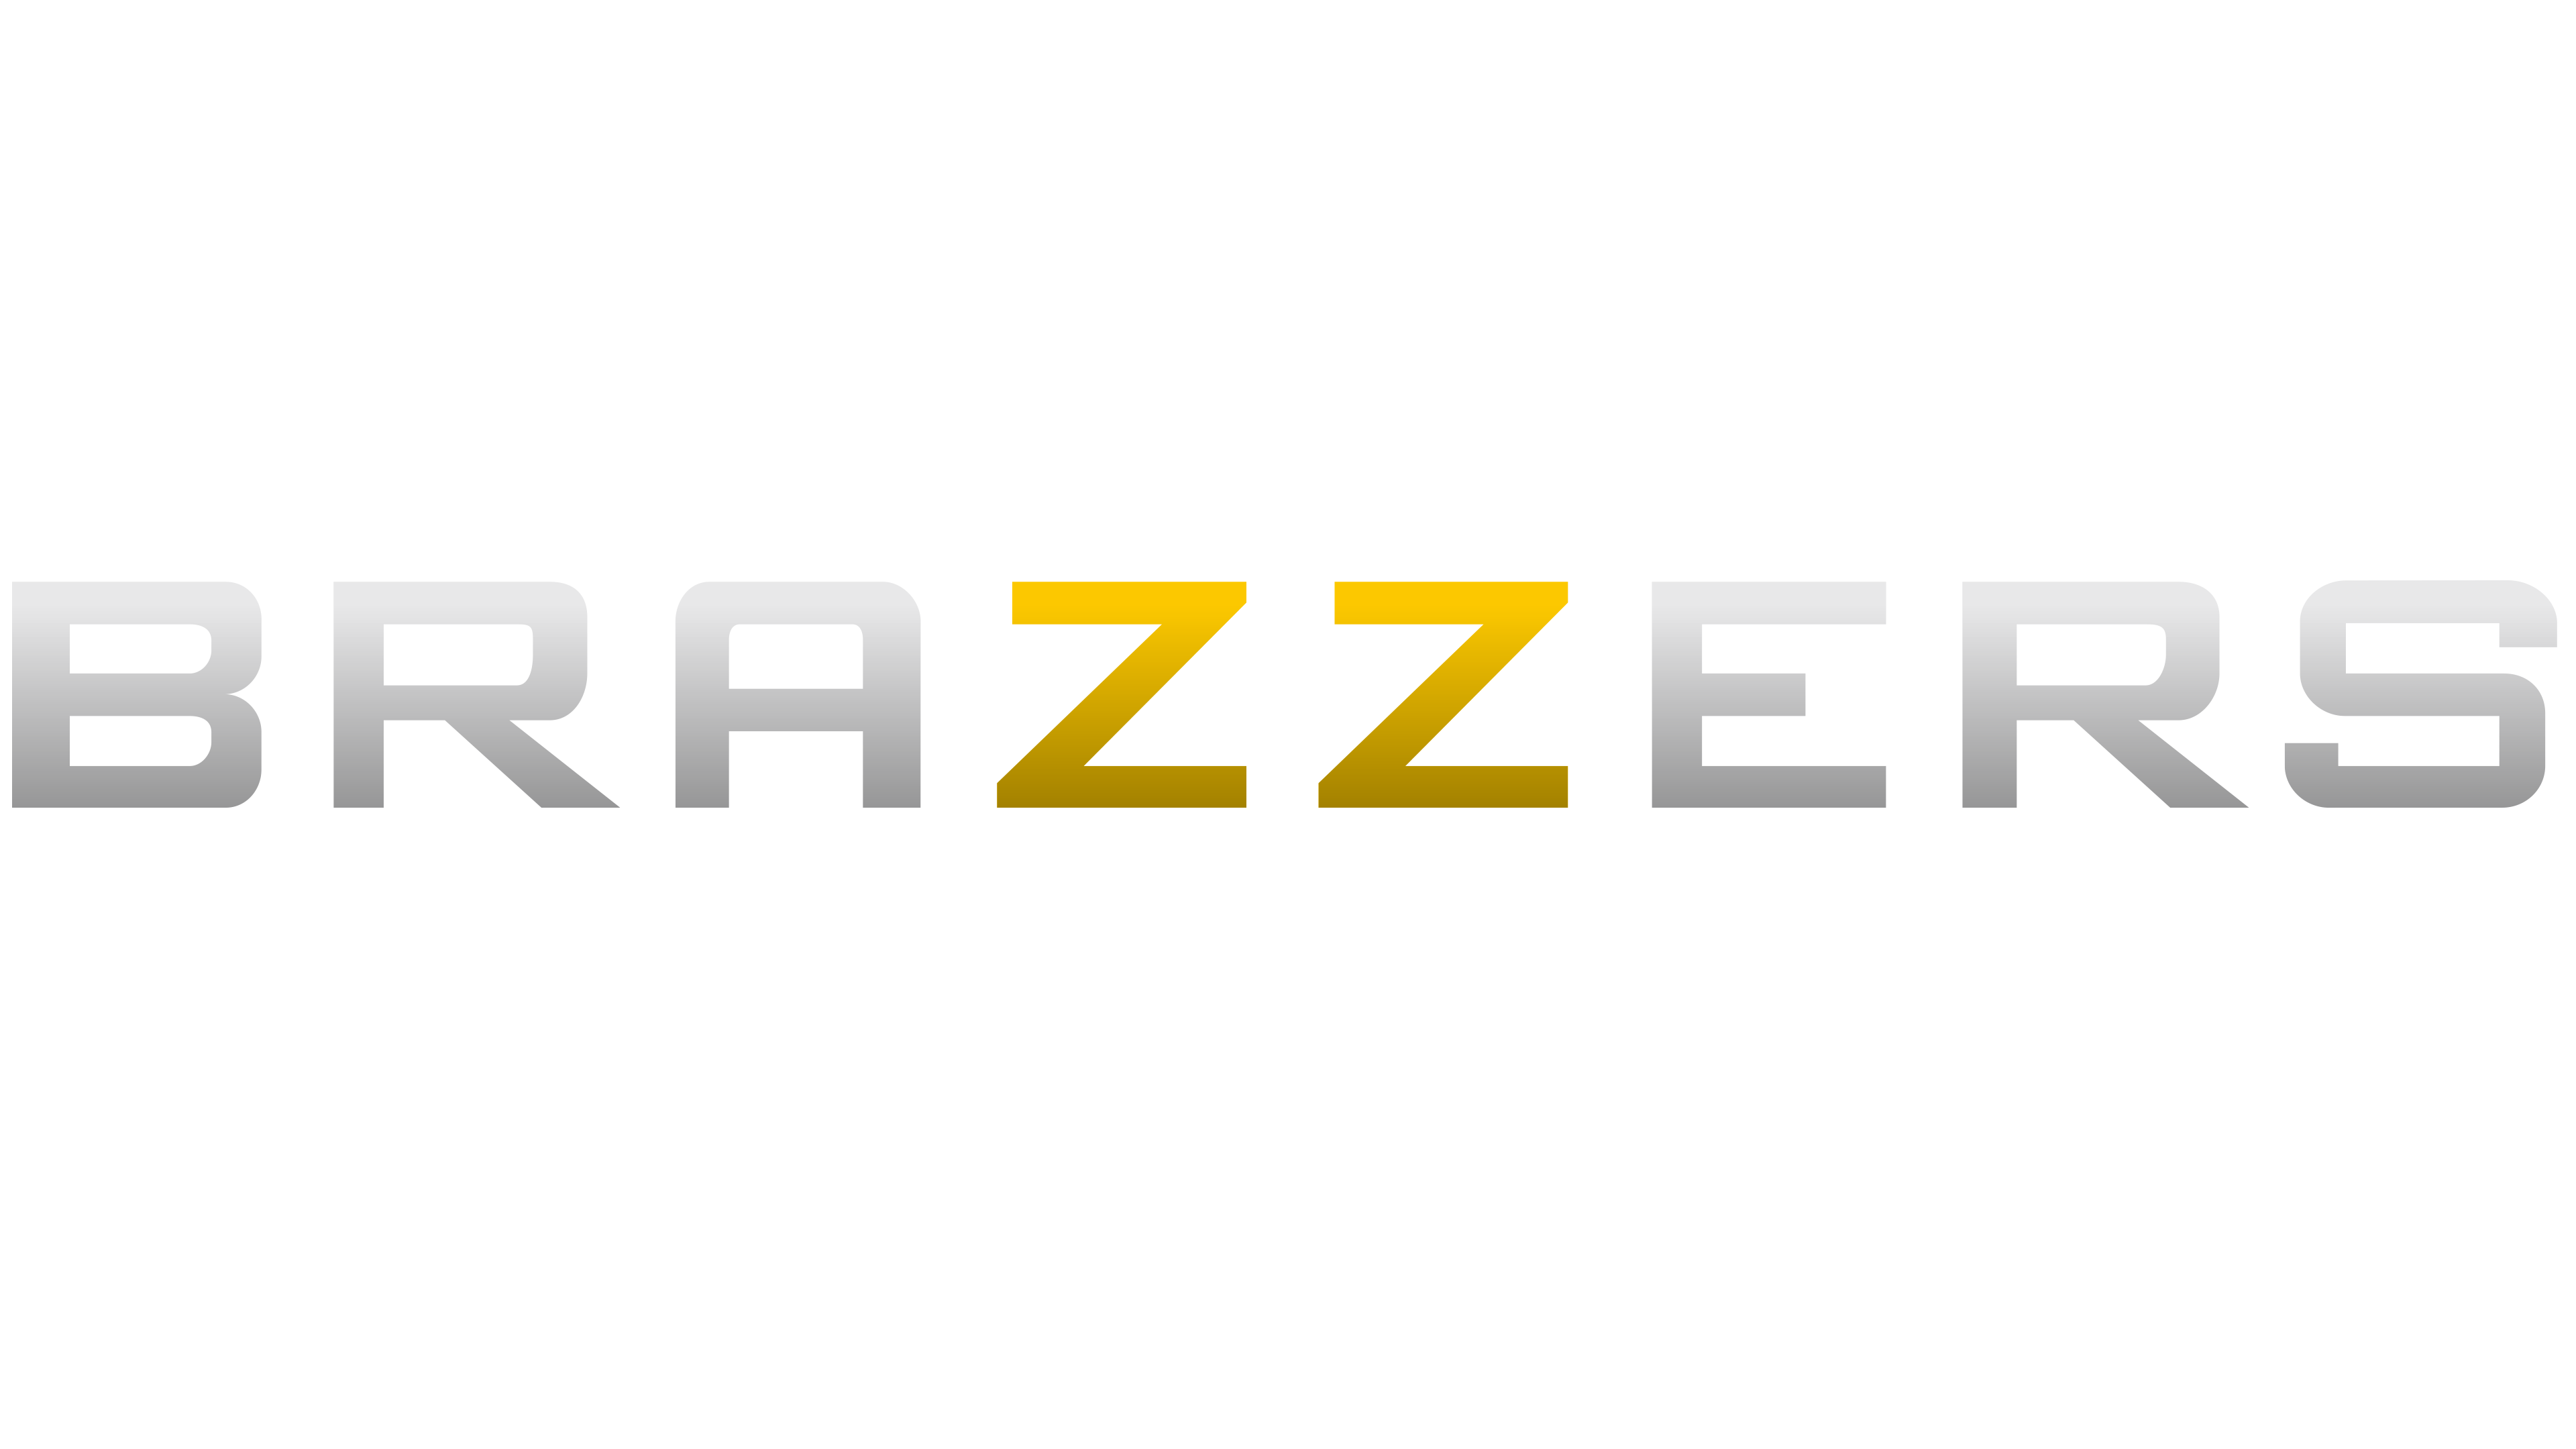 Logos de marcas. Brazzers logo png graphic library library